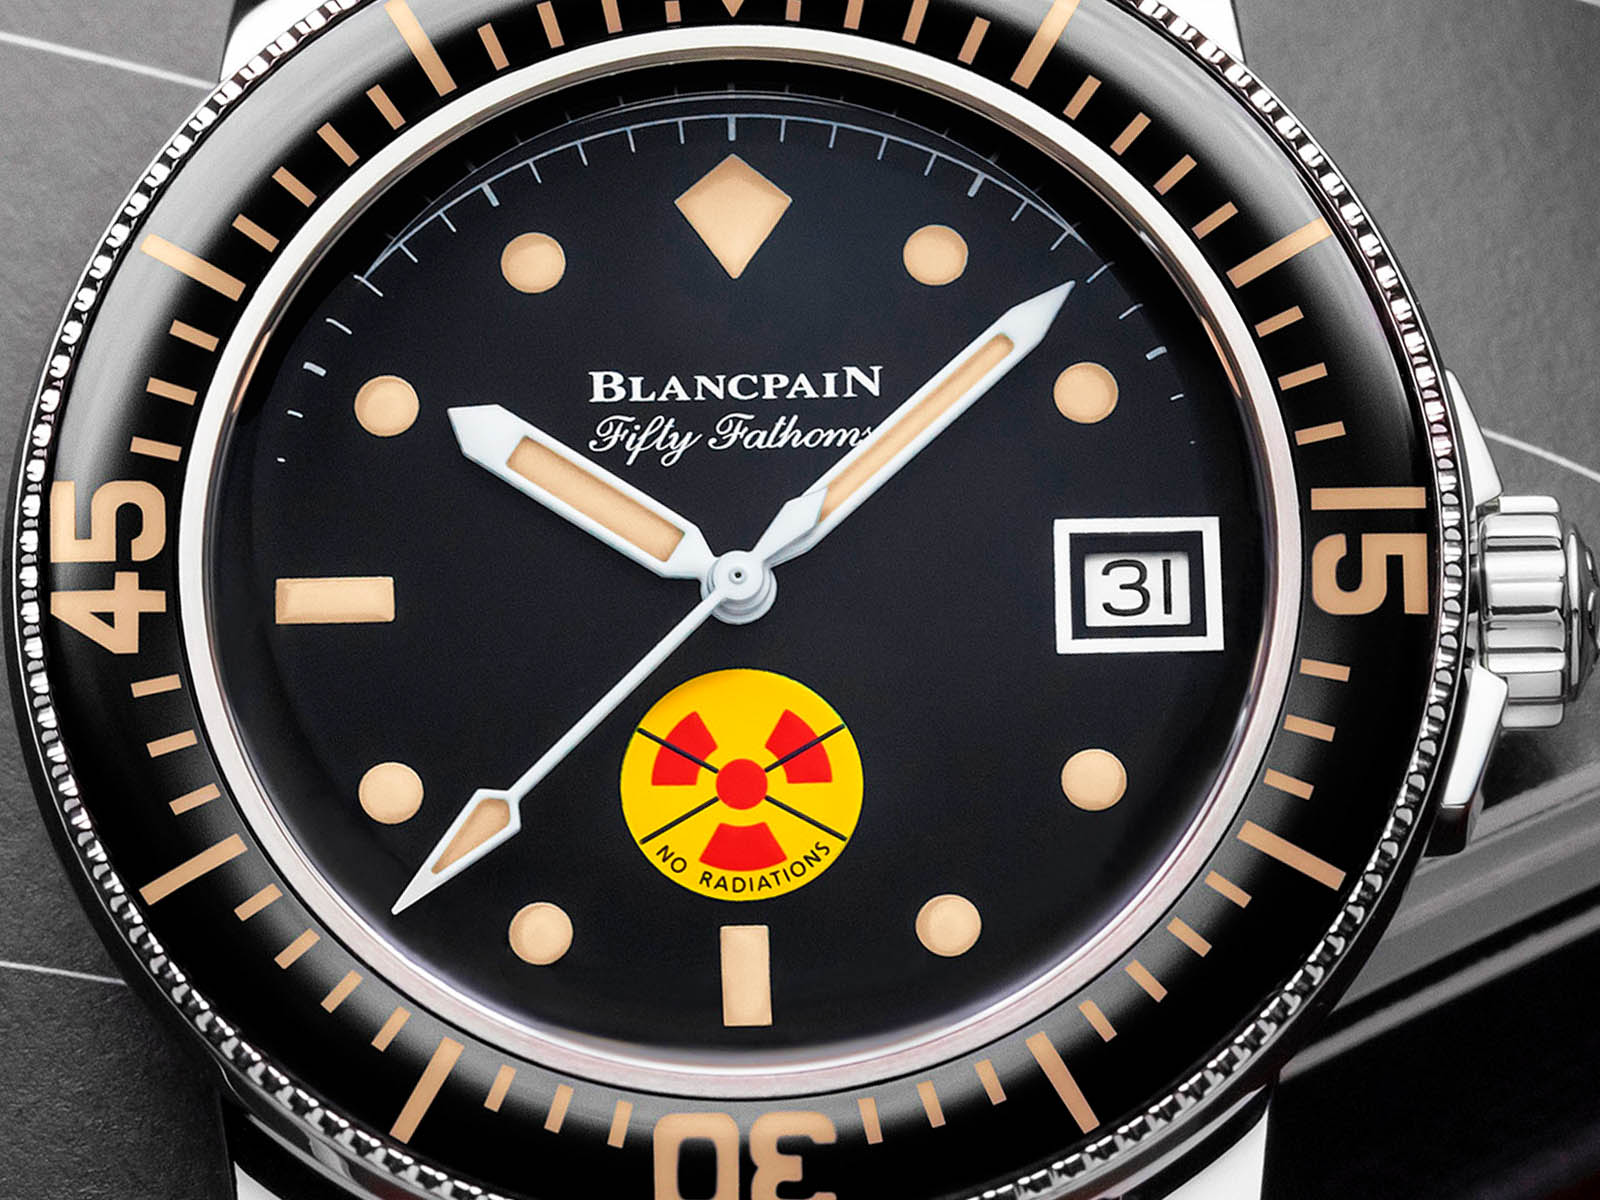 5008d-1130-b64a-blancpain-tribute-to-fifty-fathoms-no-rad-limited-edition-7.jpg